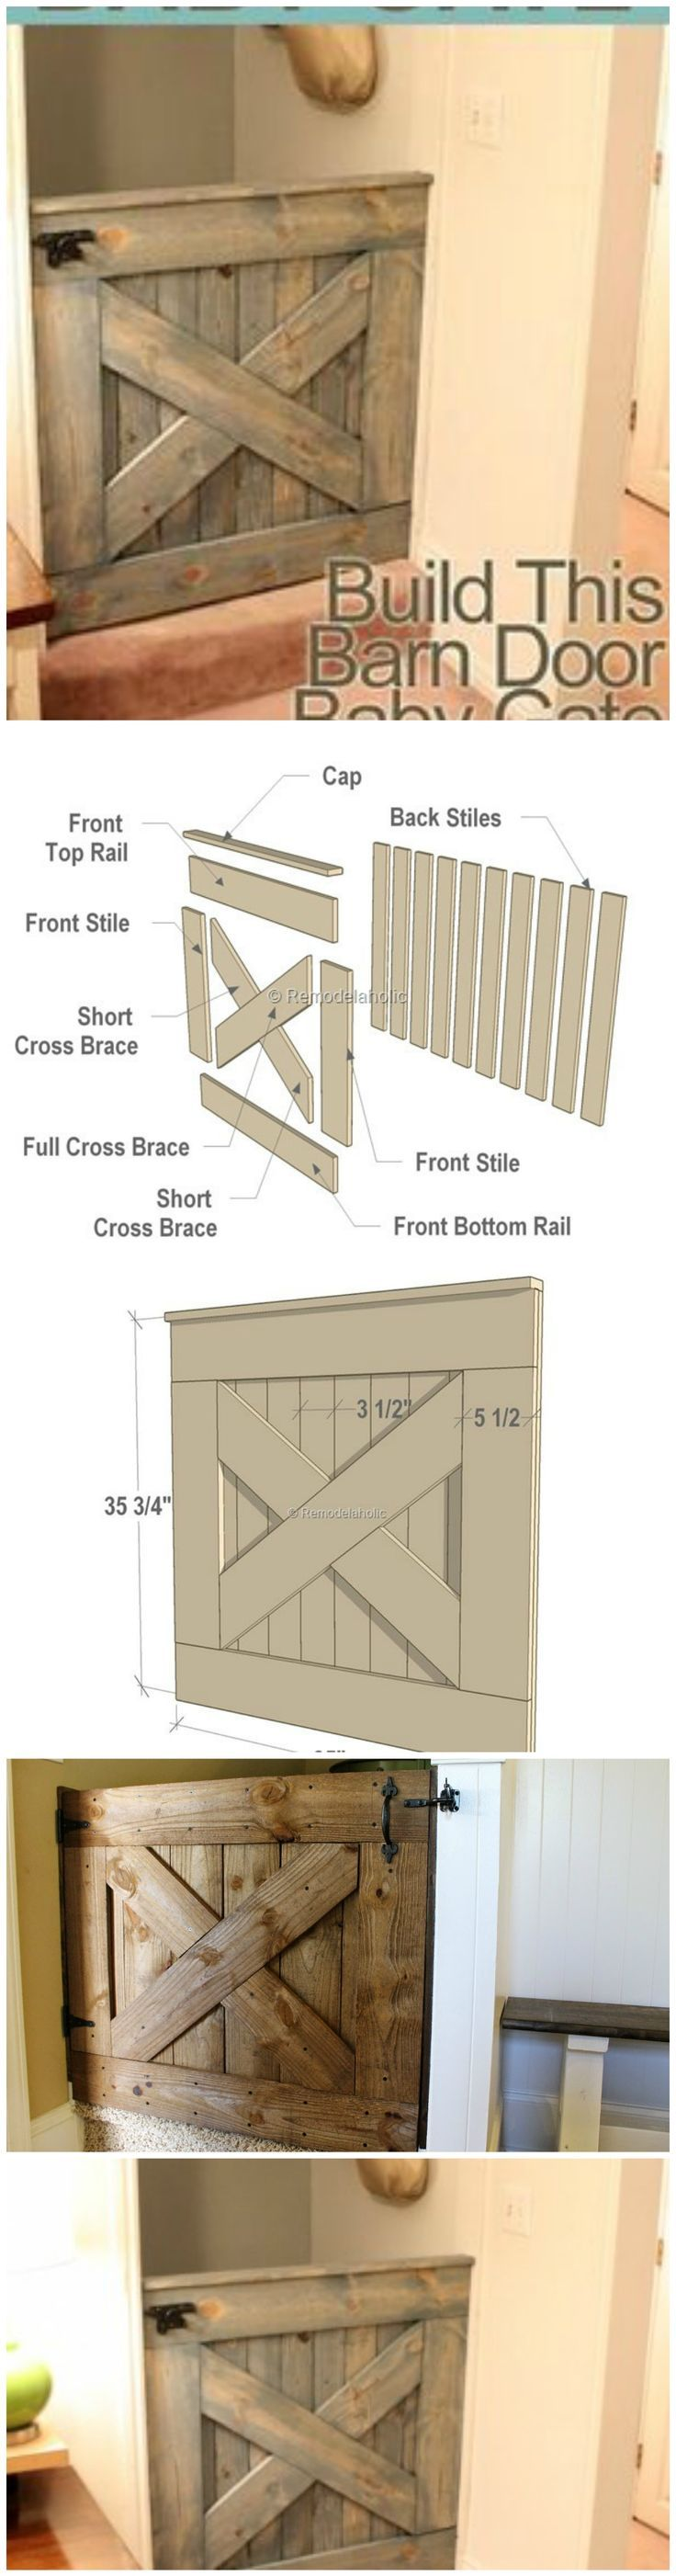 Teds Woodworking Plans Review | Woodworking, Barn door baby gate and ...